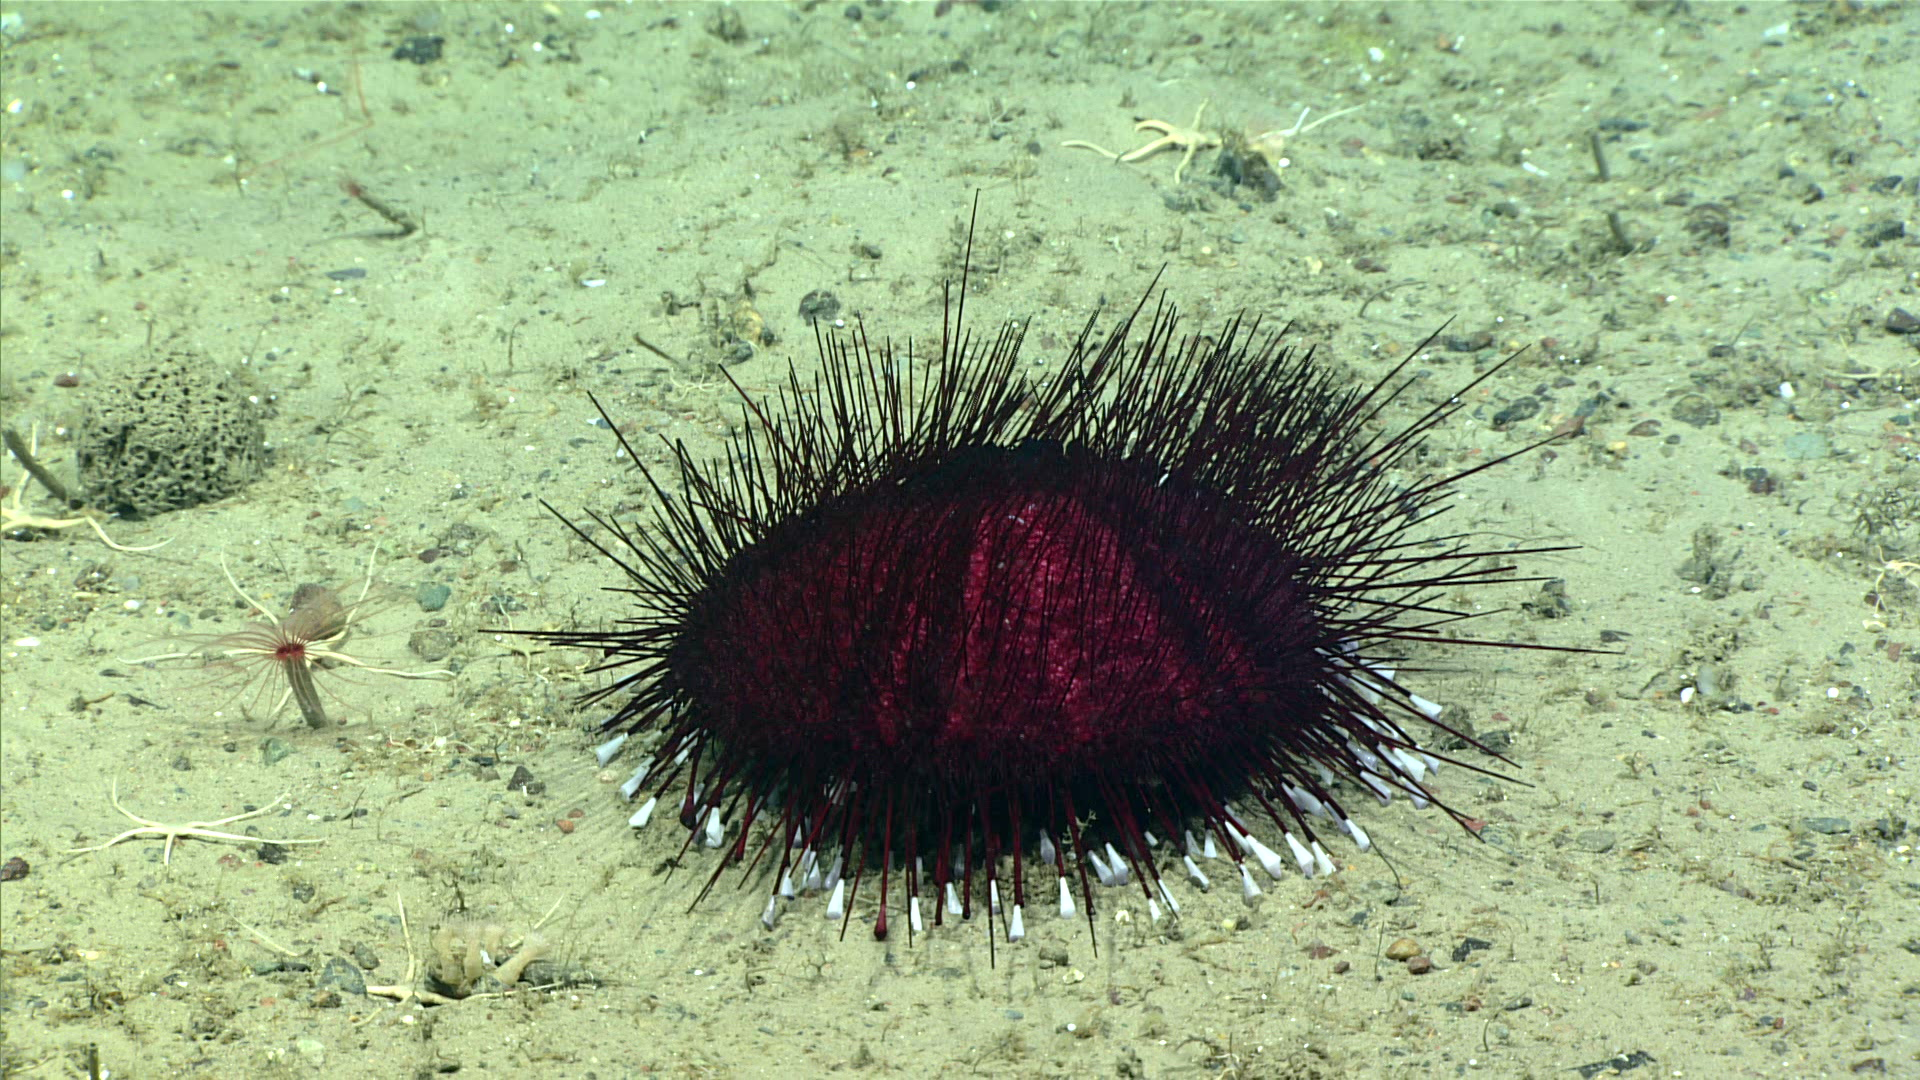 A deep sea urchin, Hygrosoma hoplacantha, amongst several sea stars.